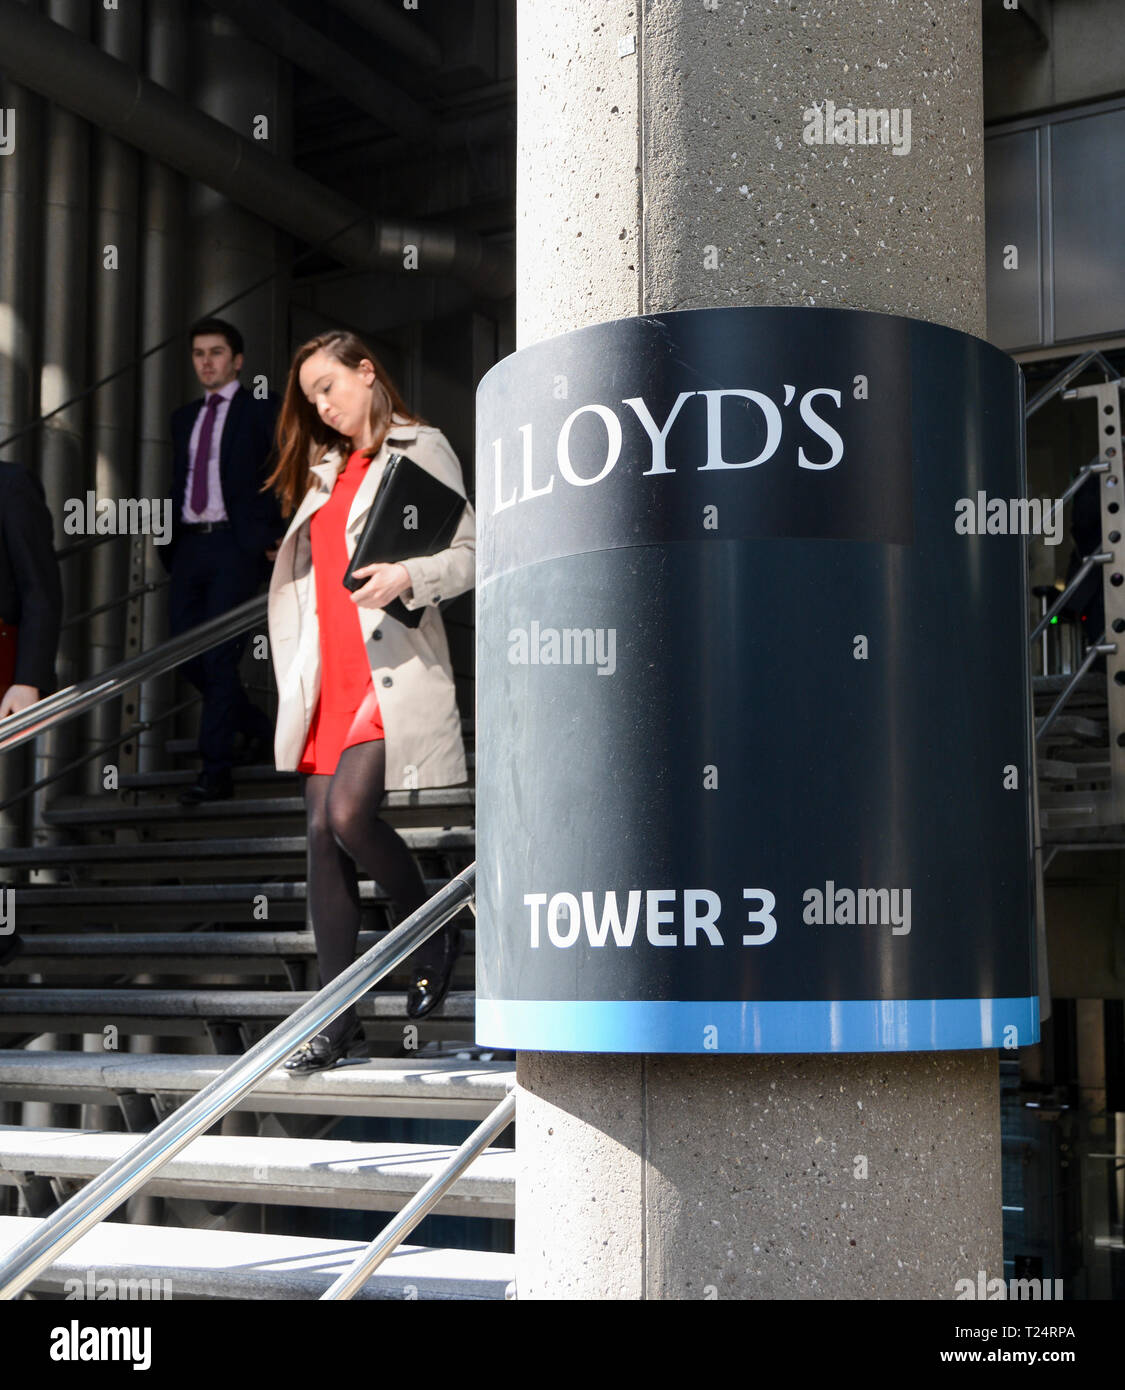 A young businesswoman leaving The Lloyd's Building, Tower 3, Lime Street, City of London, U.K. Stock Photo